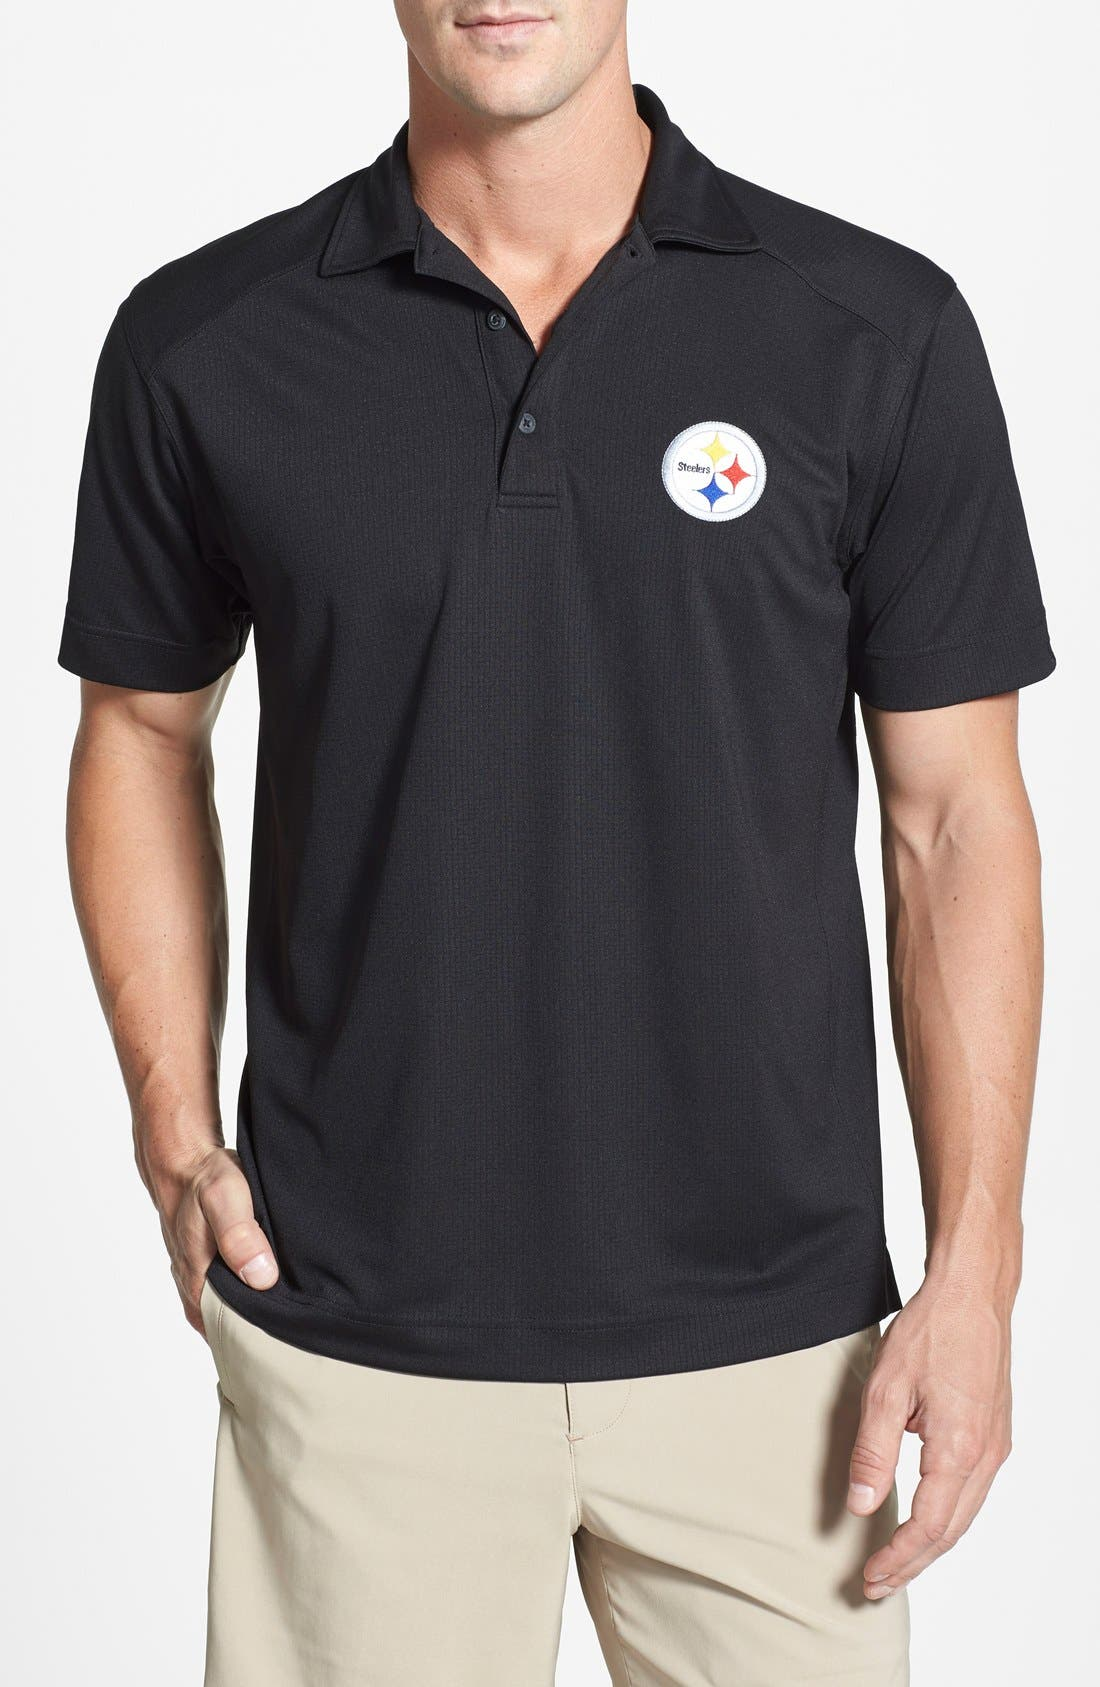 Main Image - Cutter & Buck Pittsburgh Steelers - Genre DryTec Moisture Wicking Polo